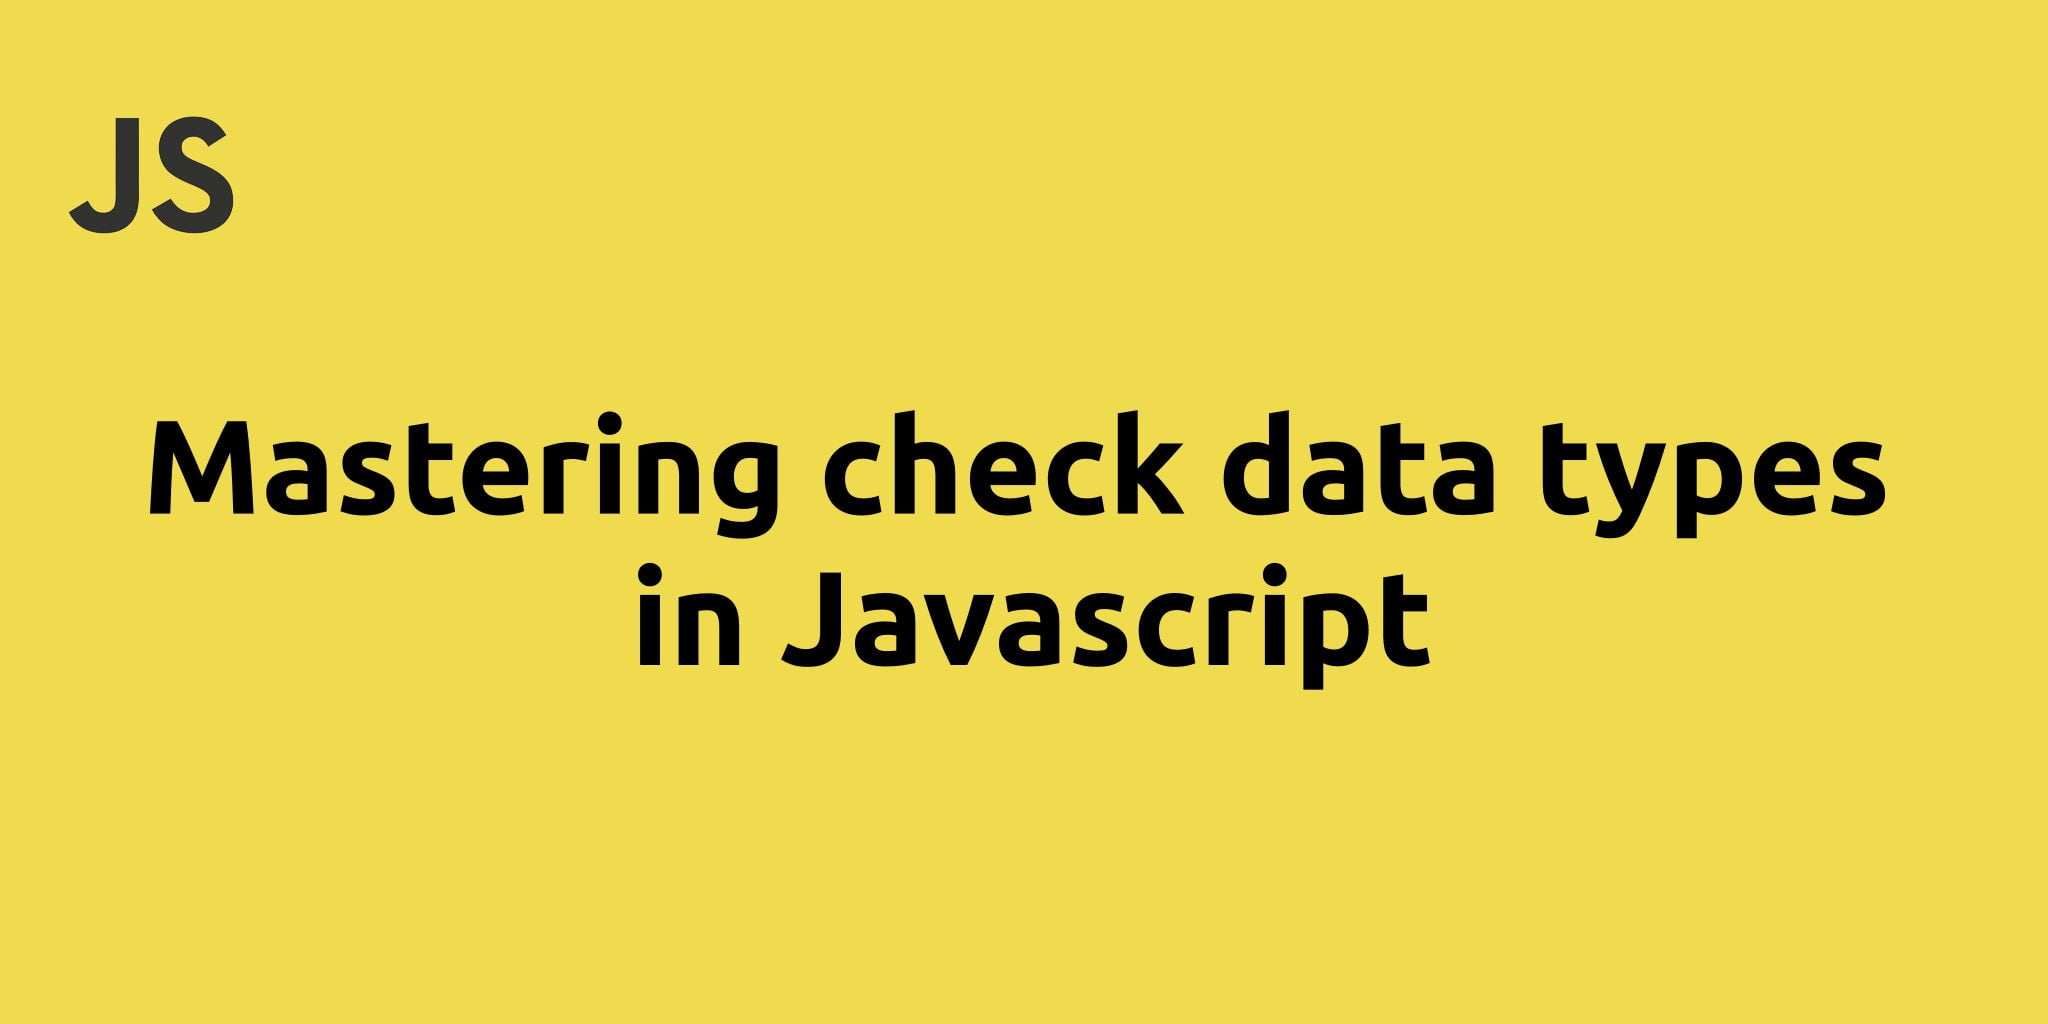 Mastering check data types in Javascript